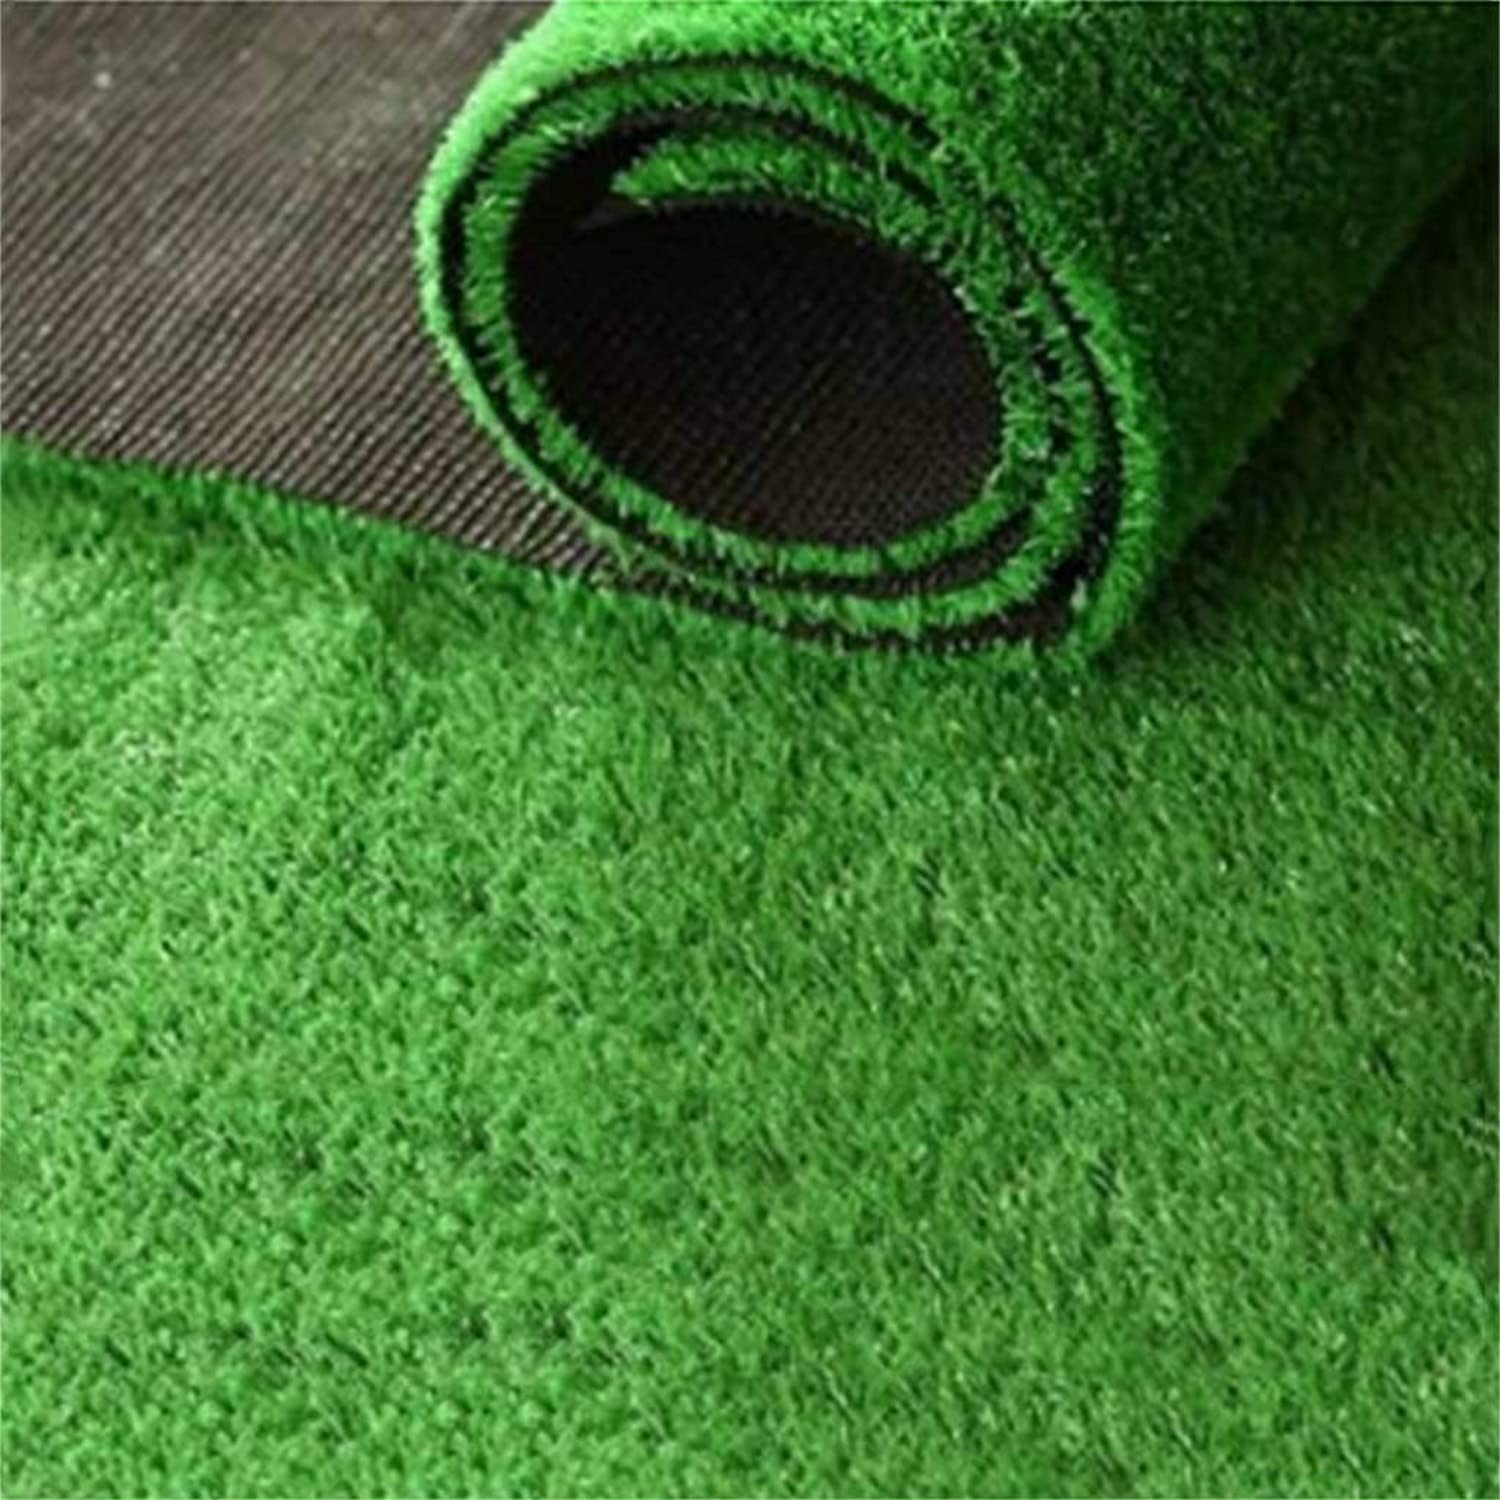 Artificial Grass Outdoor Green Encryption Thickening Fake Lawn Dog Pet Garden Neat Lush Green 15mm Pile 1m  2m (Size   3x1m)